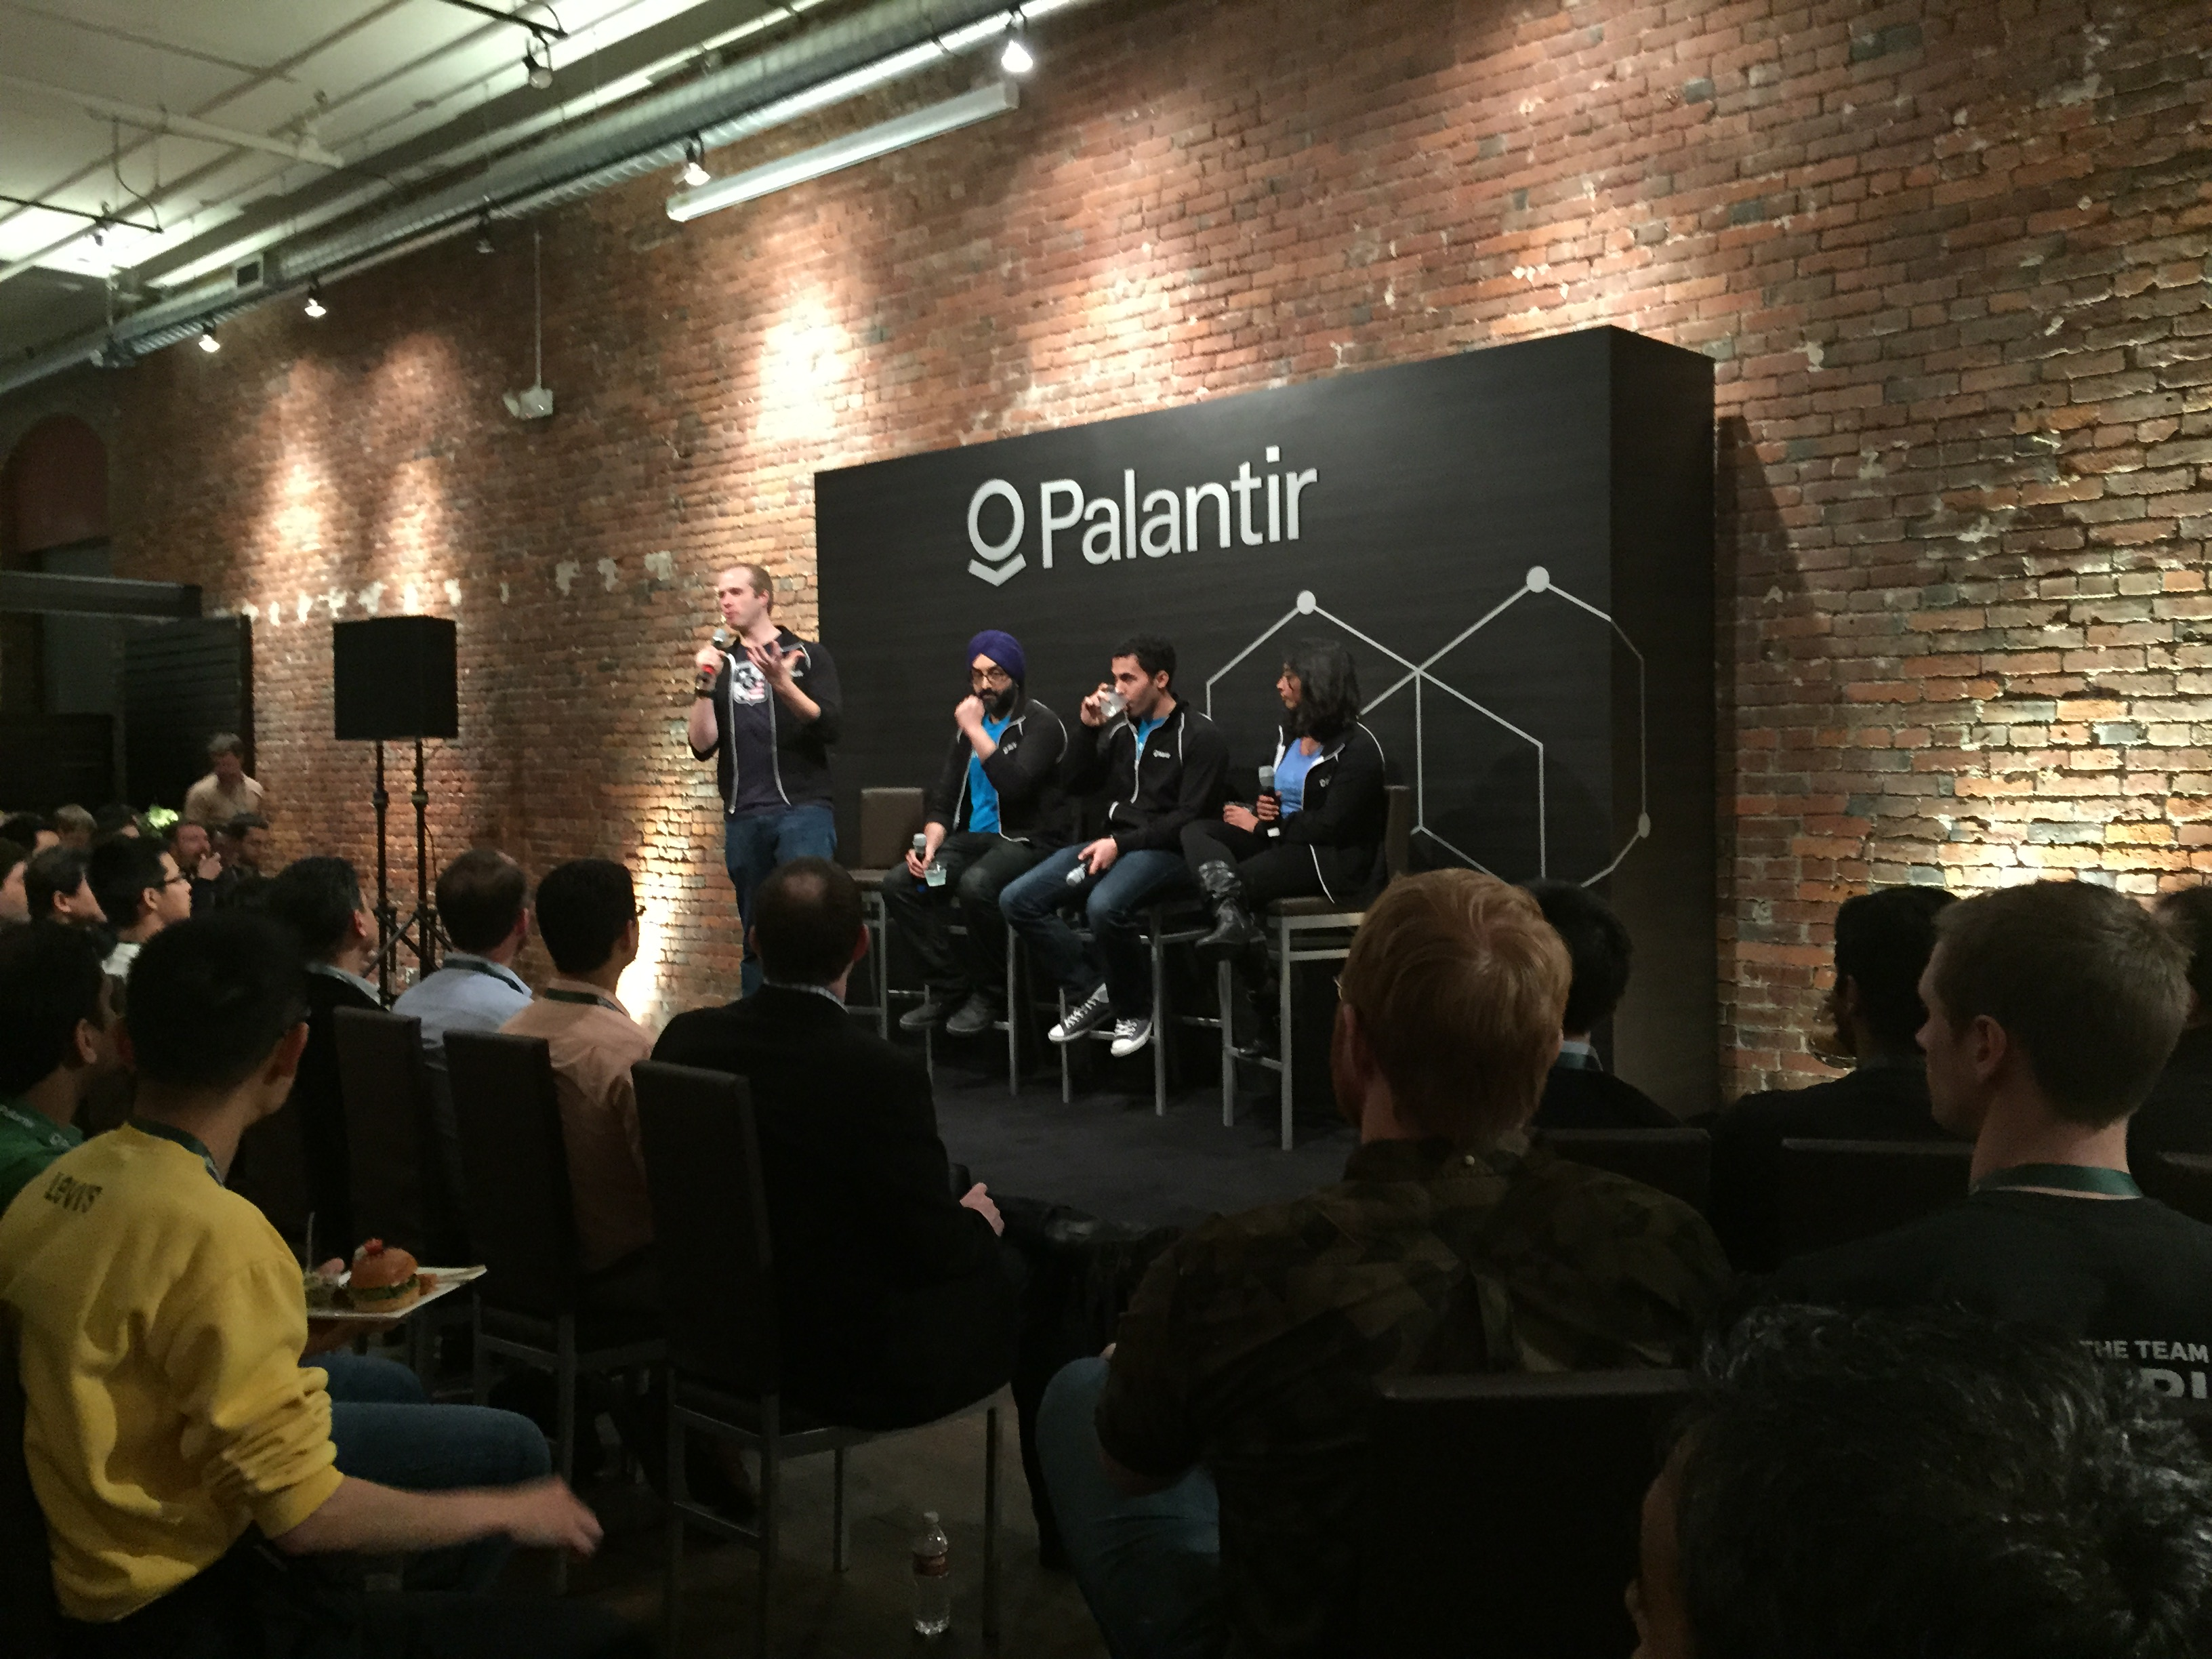 Palantir: The Hottest Startup You've Never Heard Of